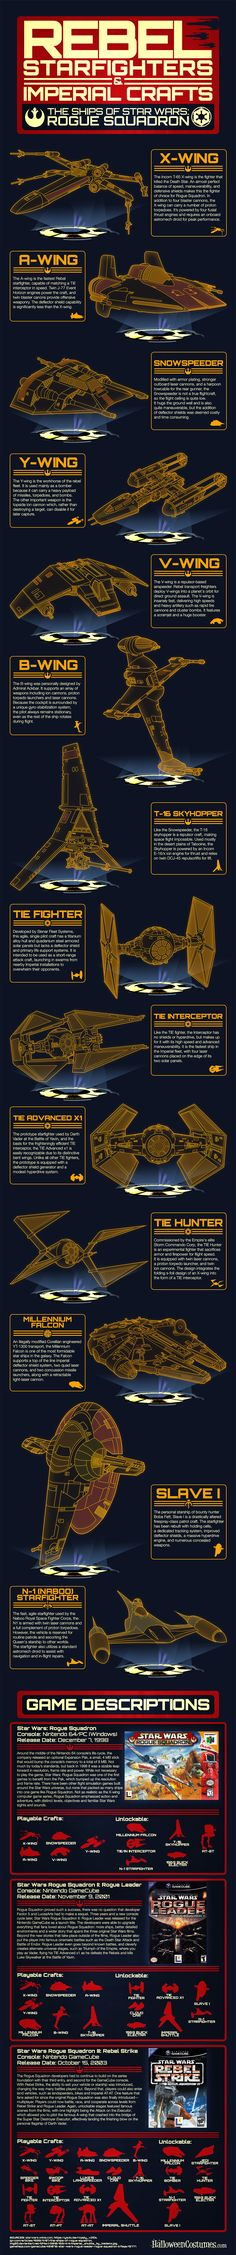 STAR WARS Infographic Breaks Down Rebel Starfighters and Imperial Crafts